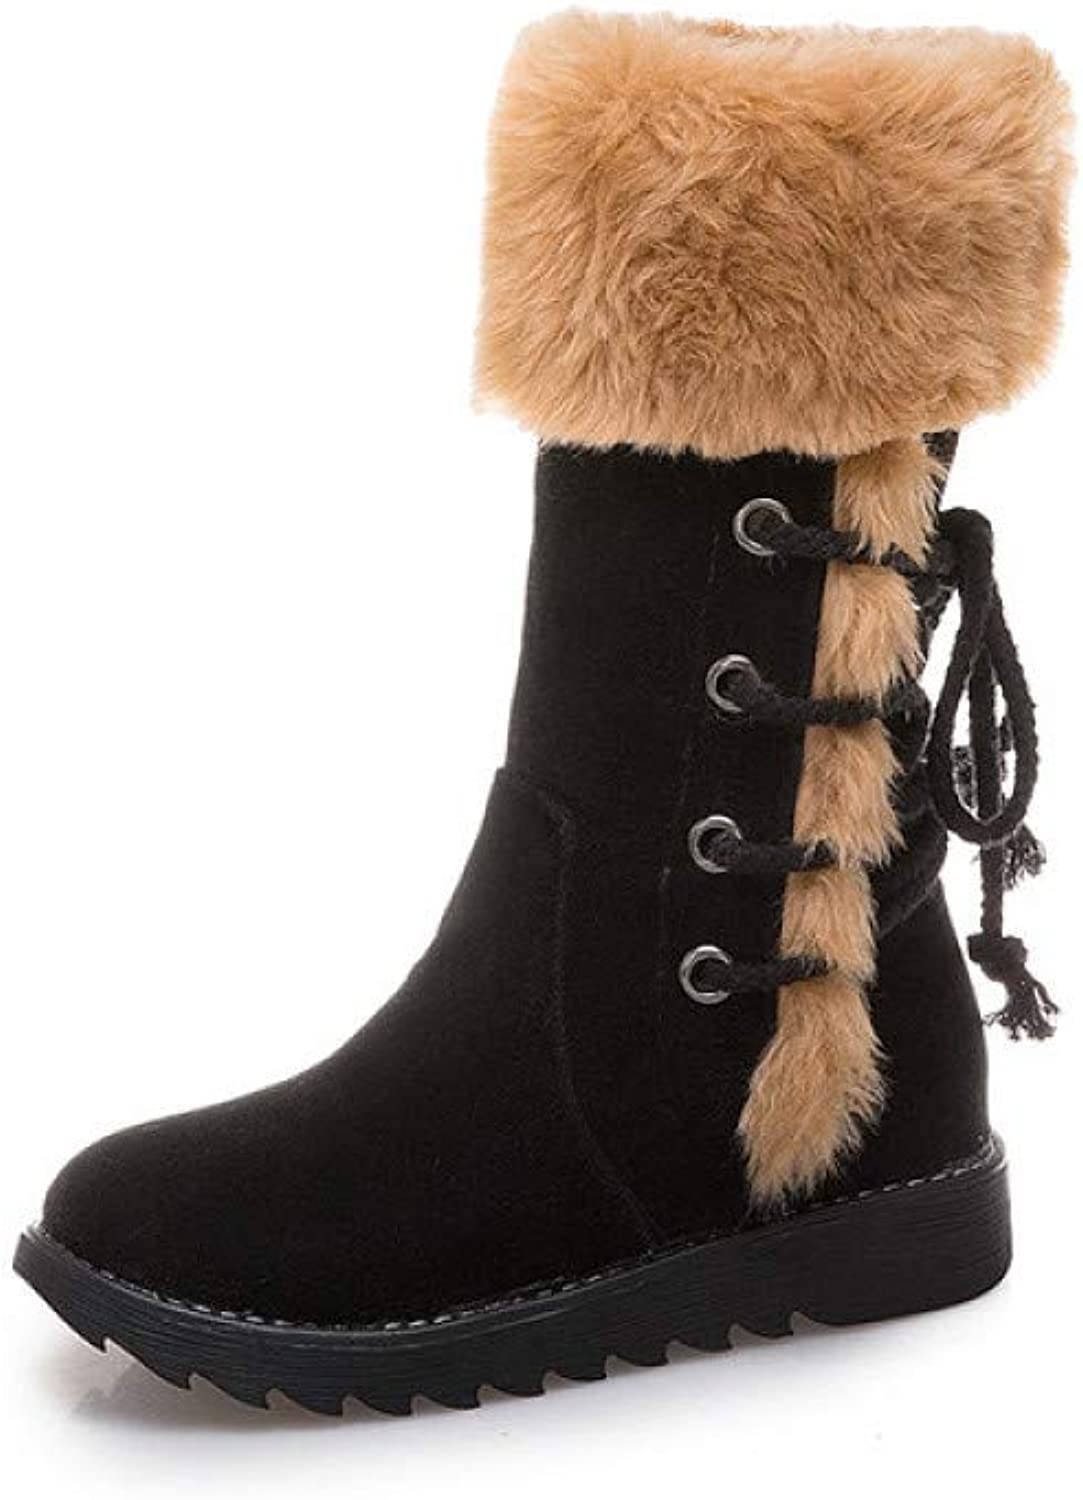 Boots for Women, Autumn and Winter Large Size Flat Low Heel Snow Boots, Warm, Breathable, Non-Slip Boots